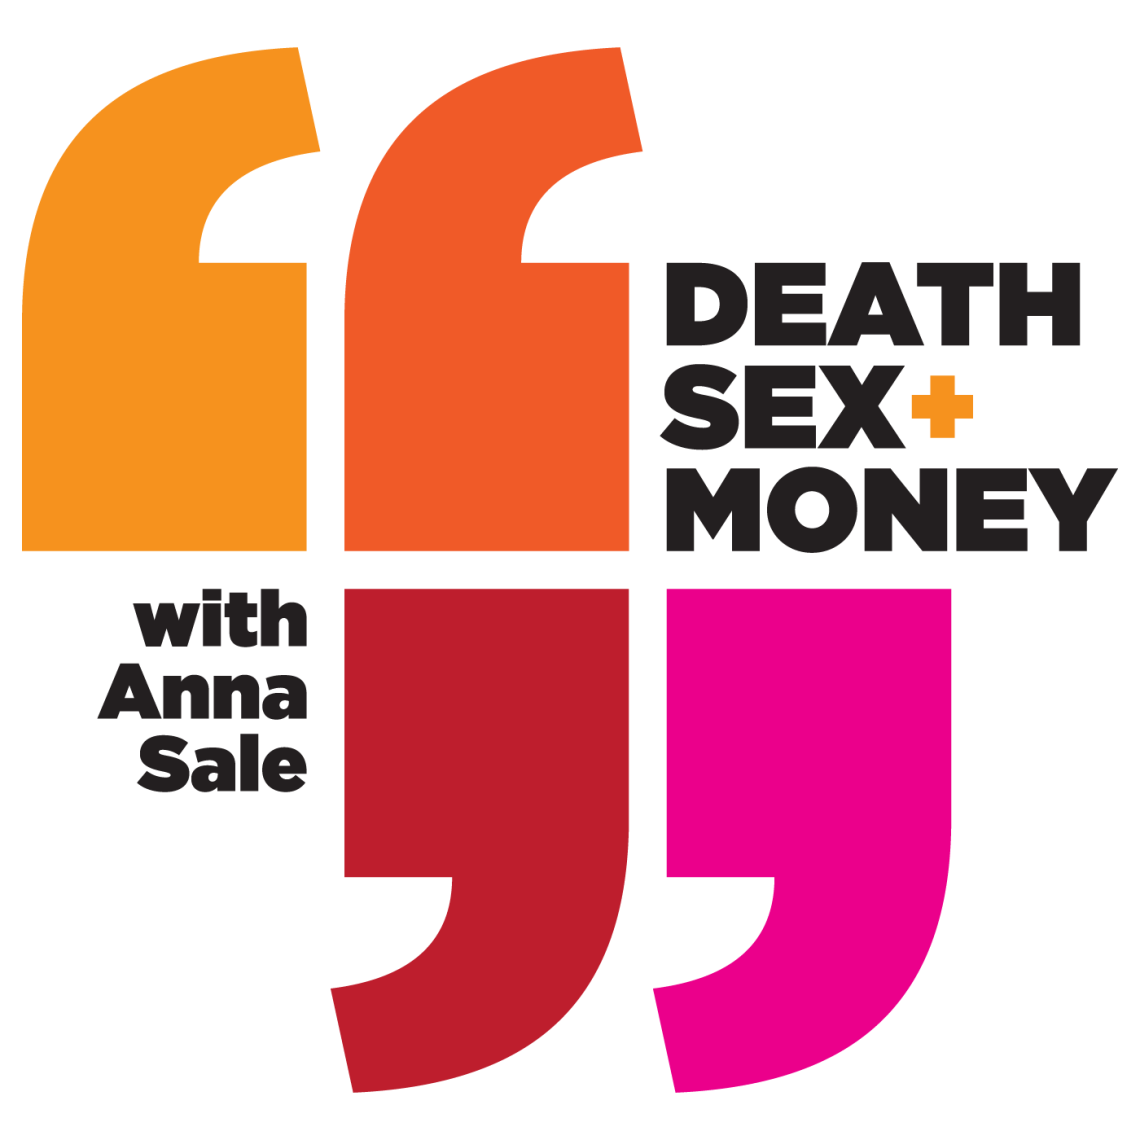 Death, Sex + Money